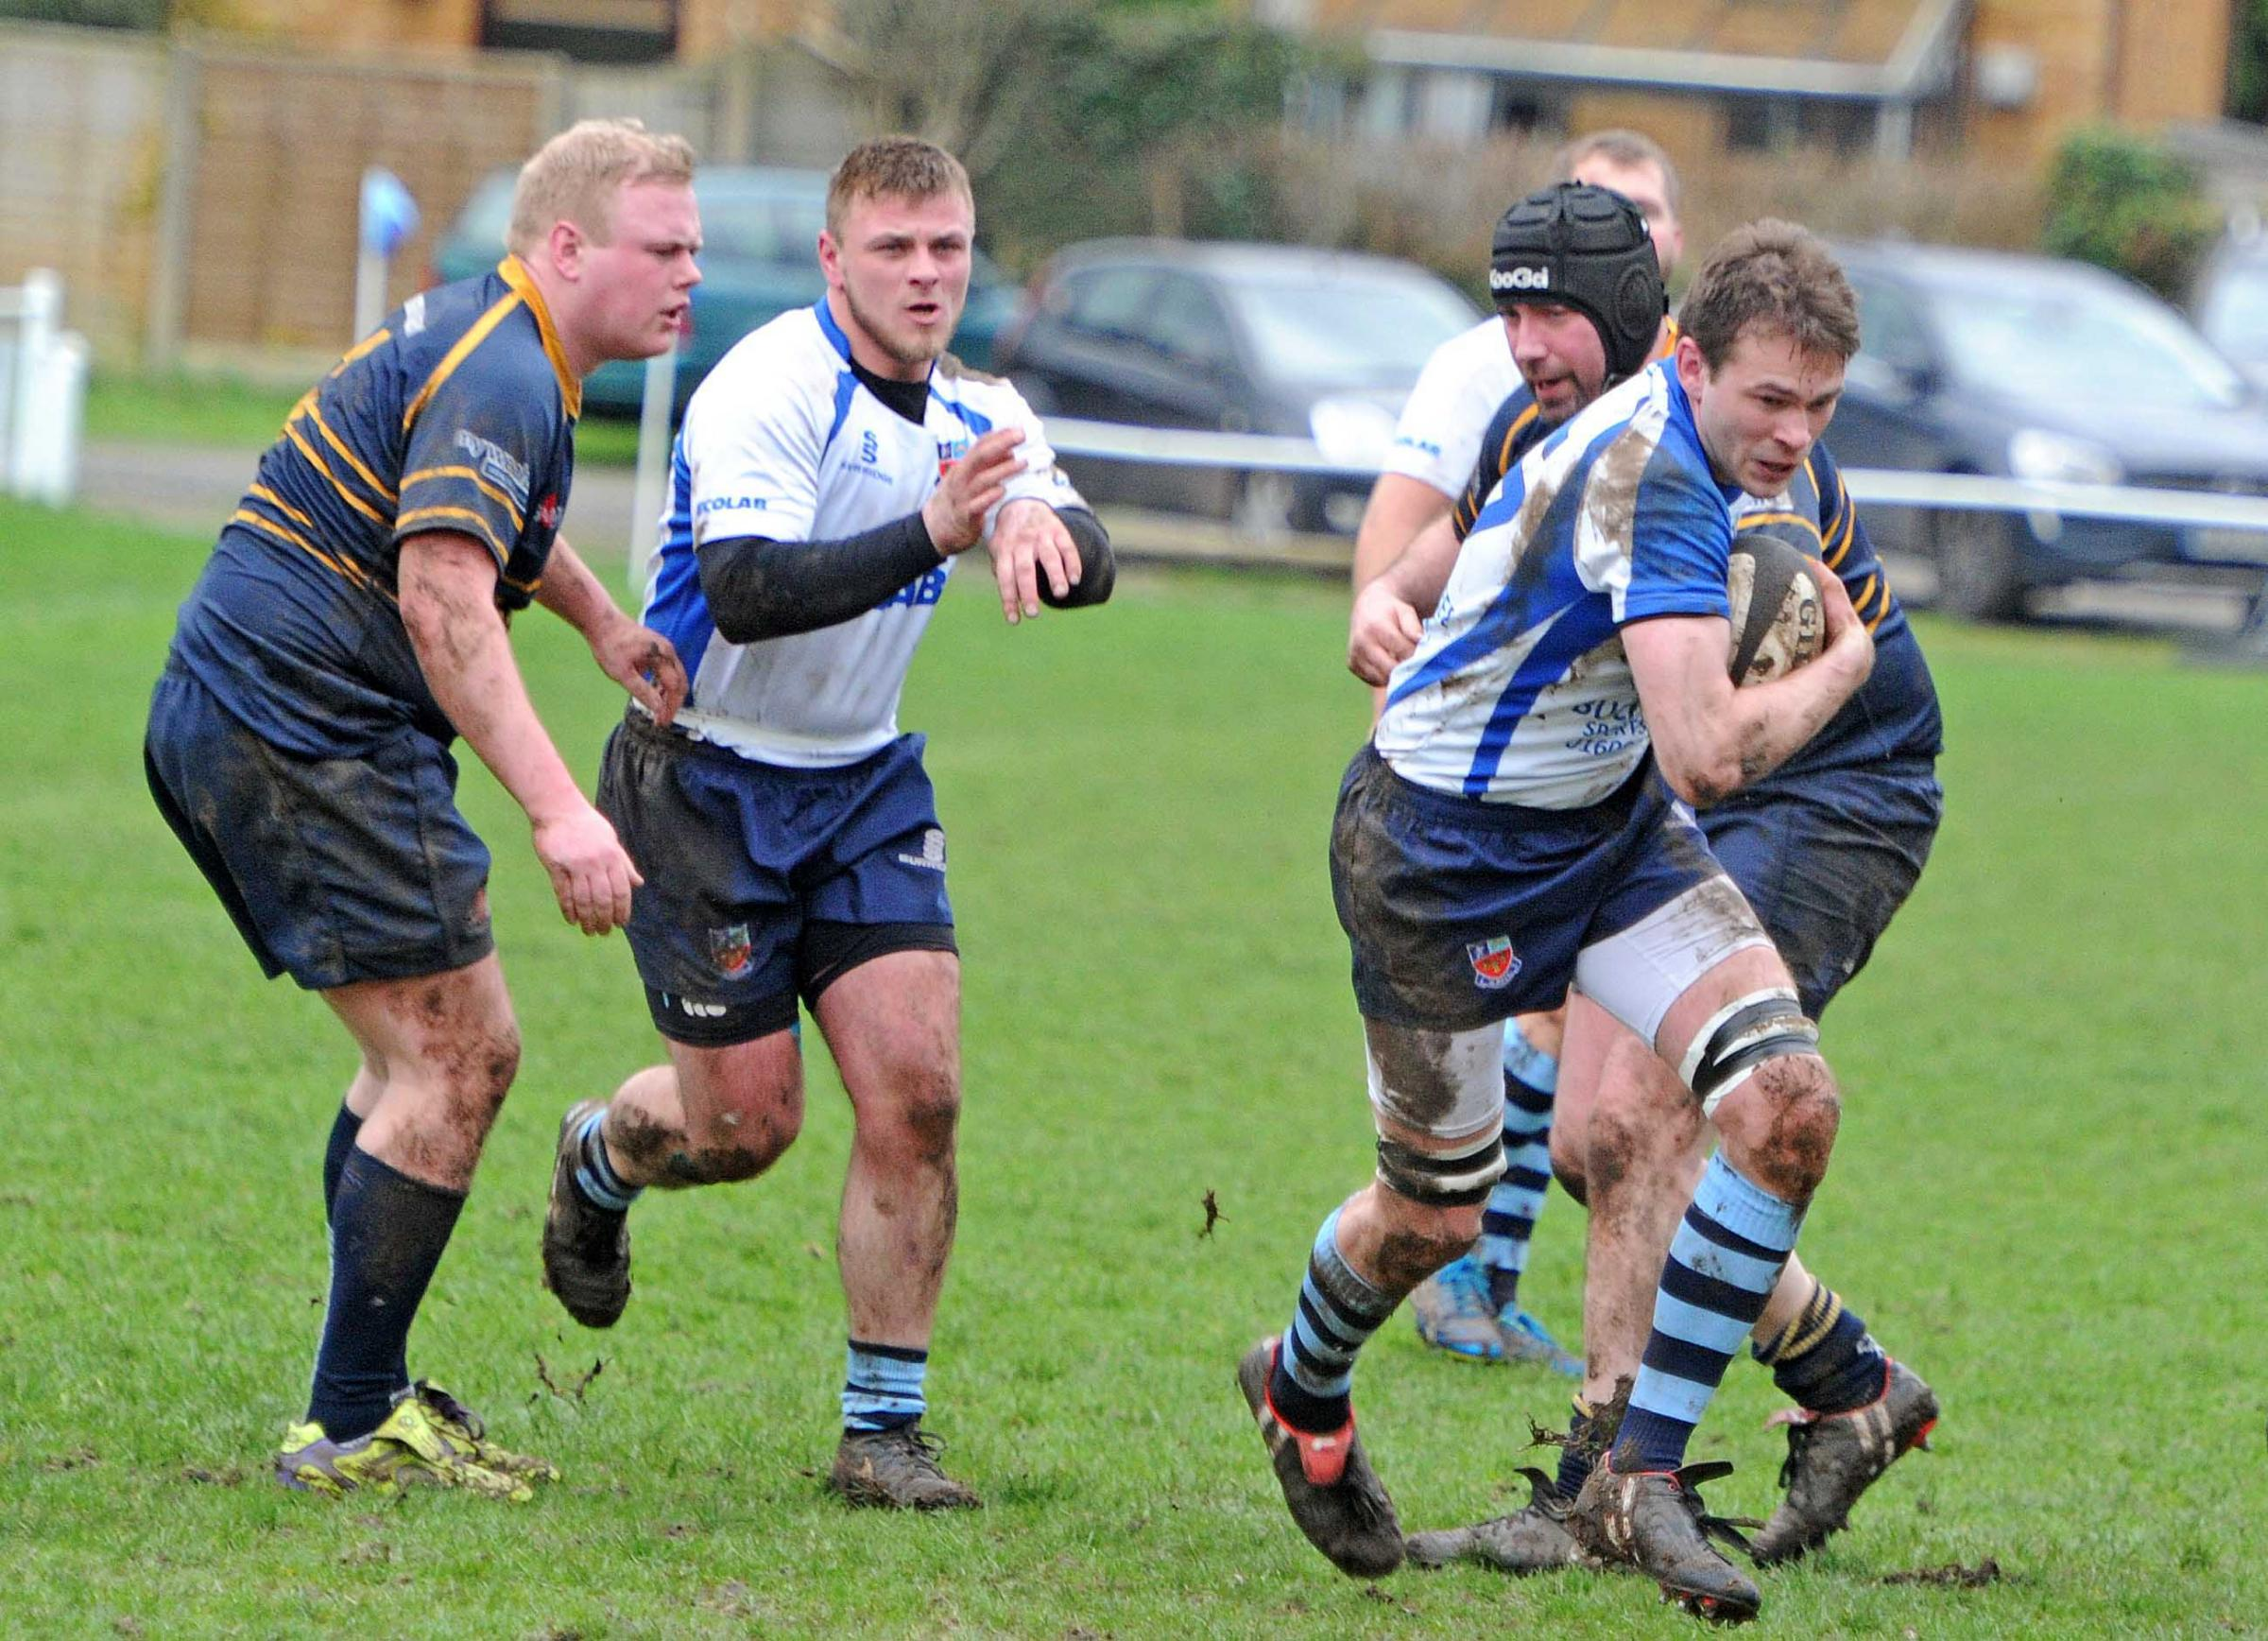 Matthew Treacy, pictured in action last season against Oldershaw, was among Winnington Park's try-scorers when Congleton visited Burrows Hill on Saturday